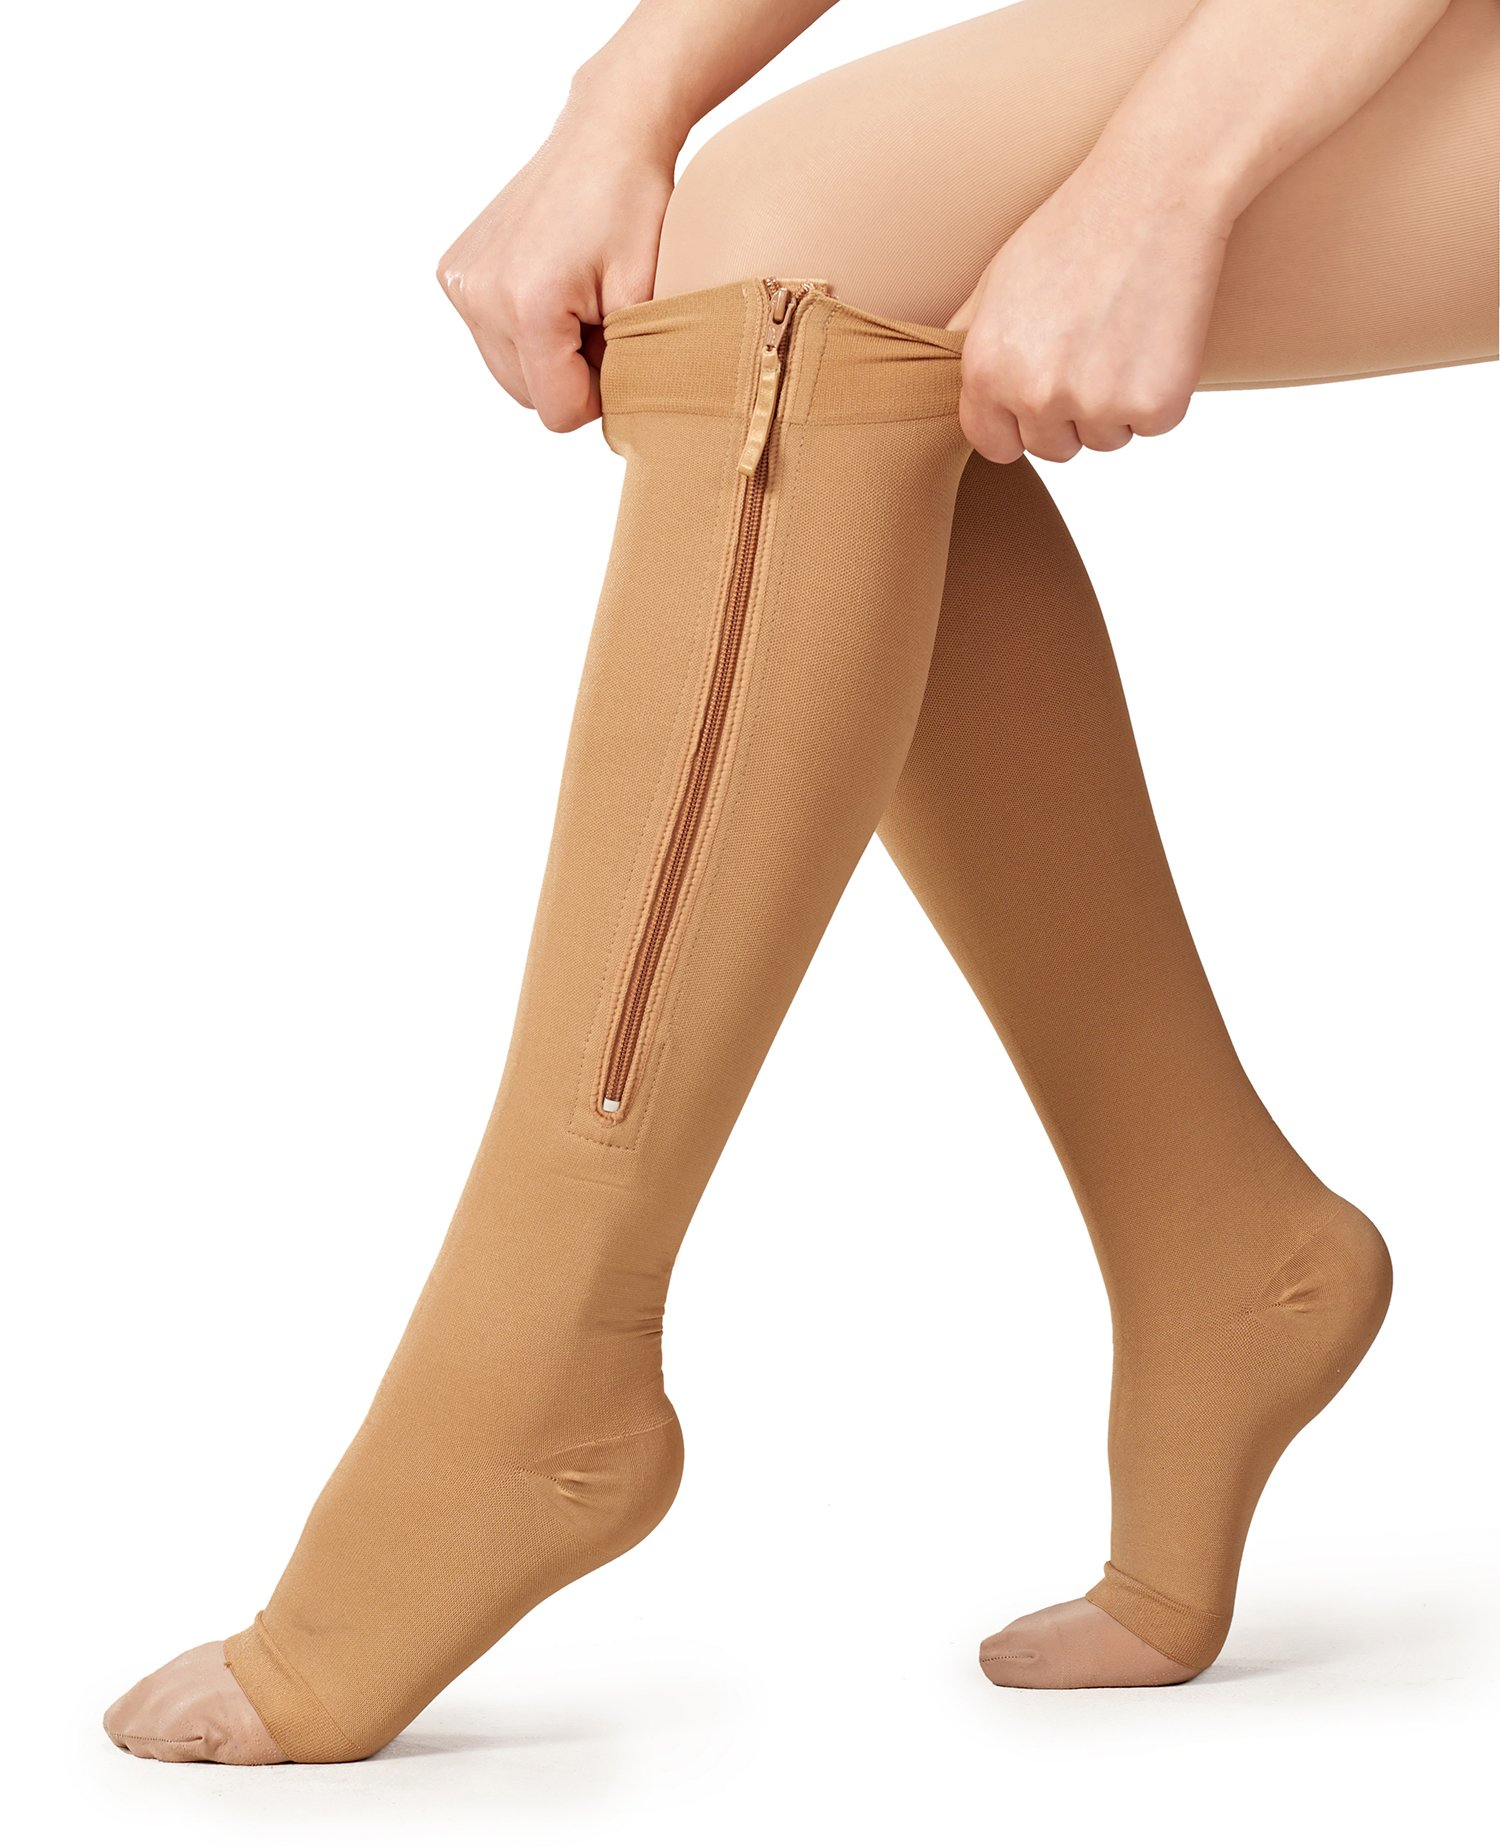 UNCONFINE Zipper Compression Socks Open Toe & Medical and Easy On Off with 10-30 mmHg for Varicose Veins,Edema,Swollen Sore Legs